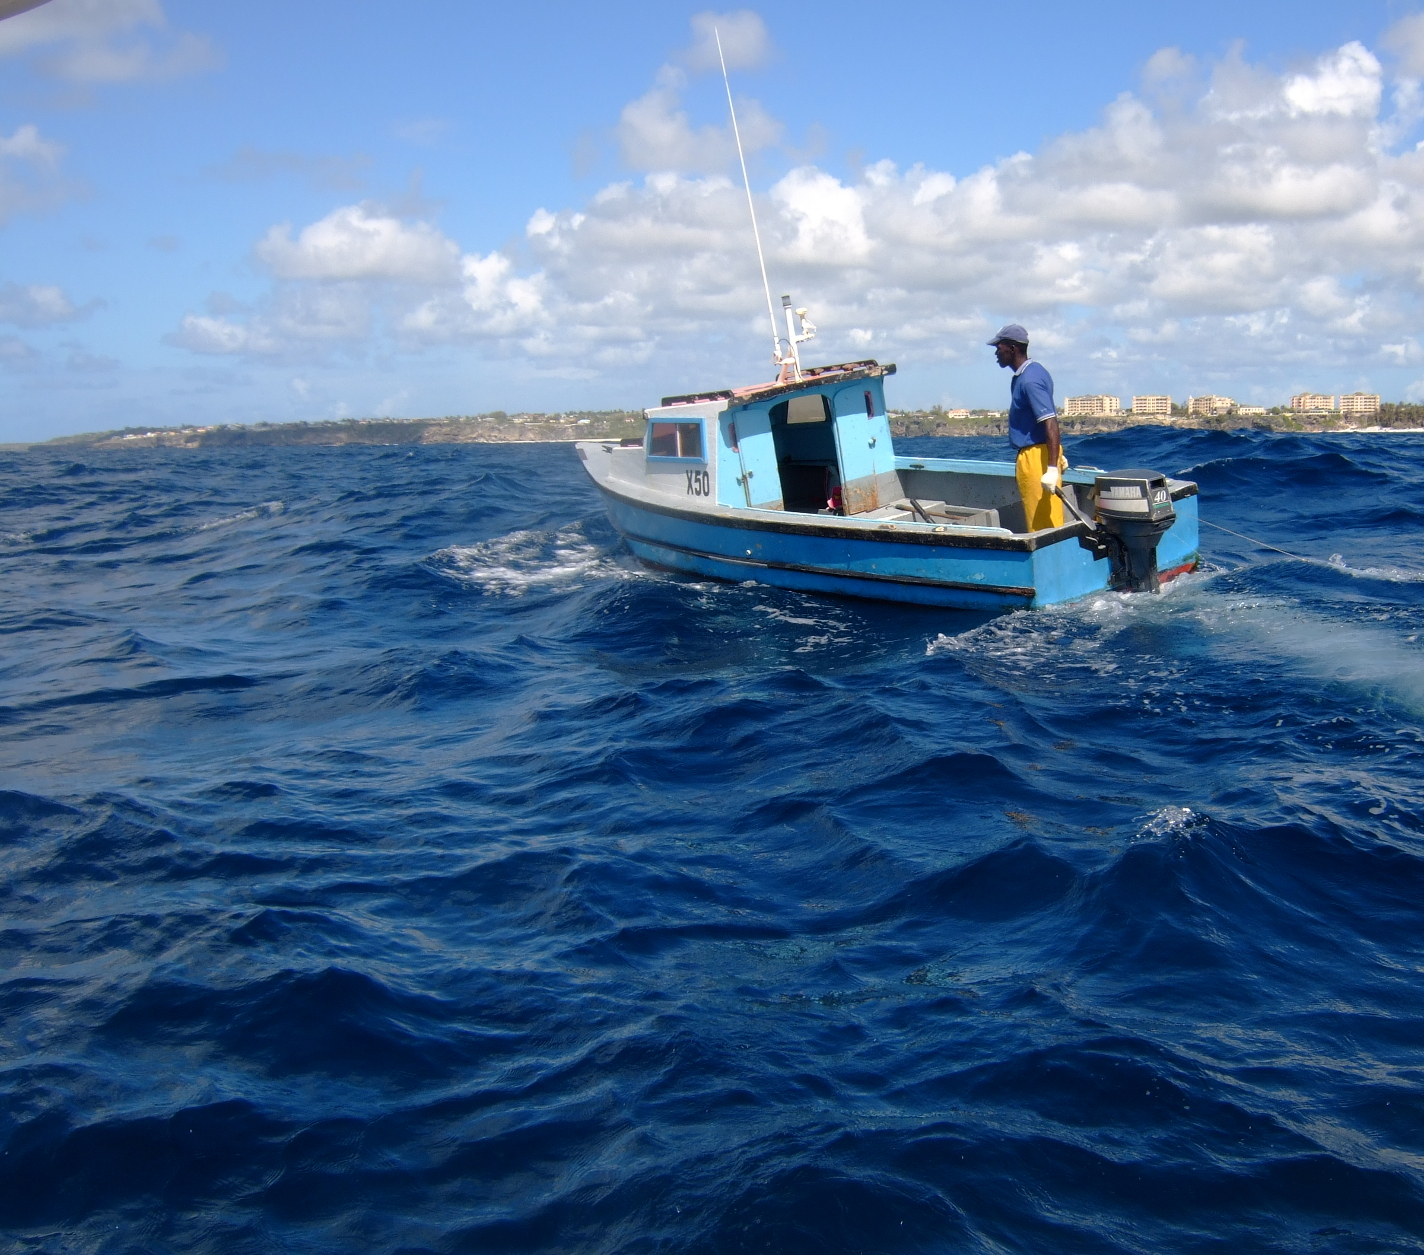 File line fishing on cobblers reef jpg wikimedia commons for Florida commercial fishing license